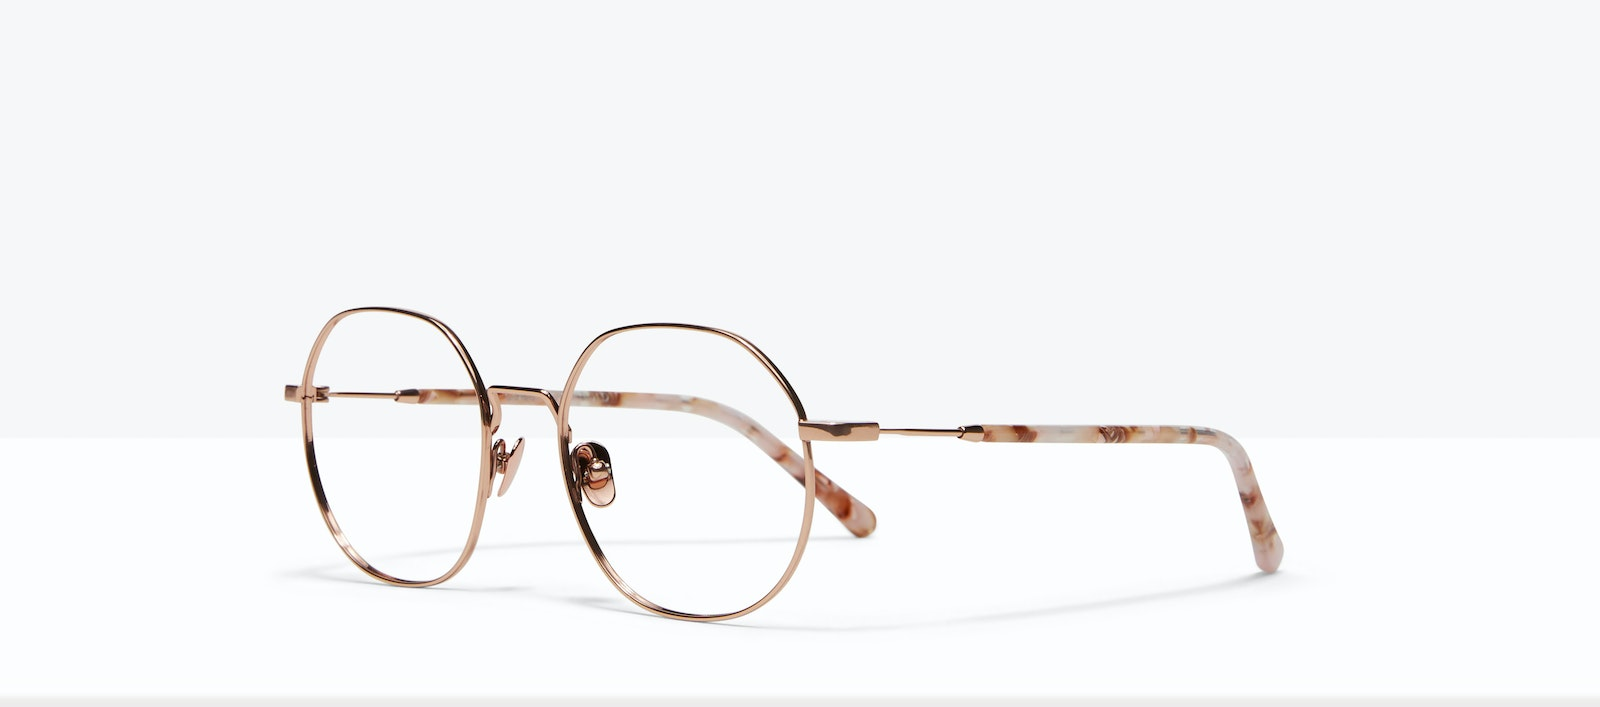 Affordable Fashion Glasses Round Eyeglasses Women Coco L Rose Gold Tilt